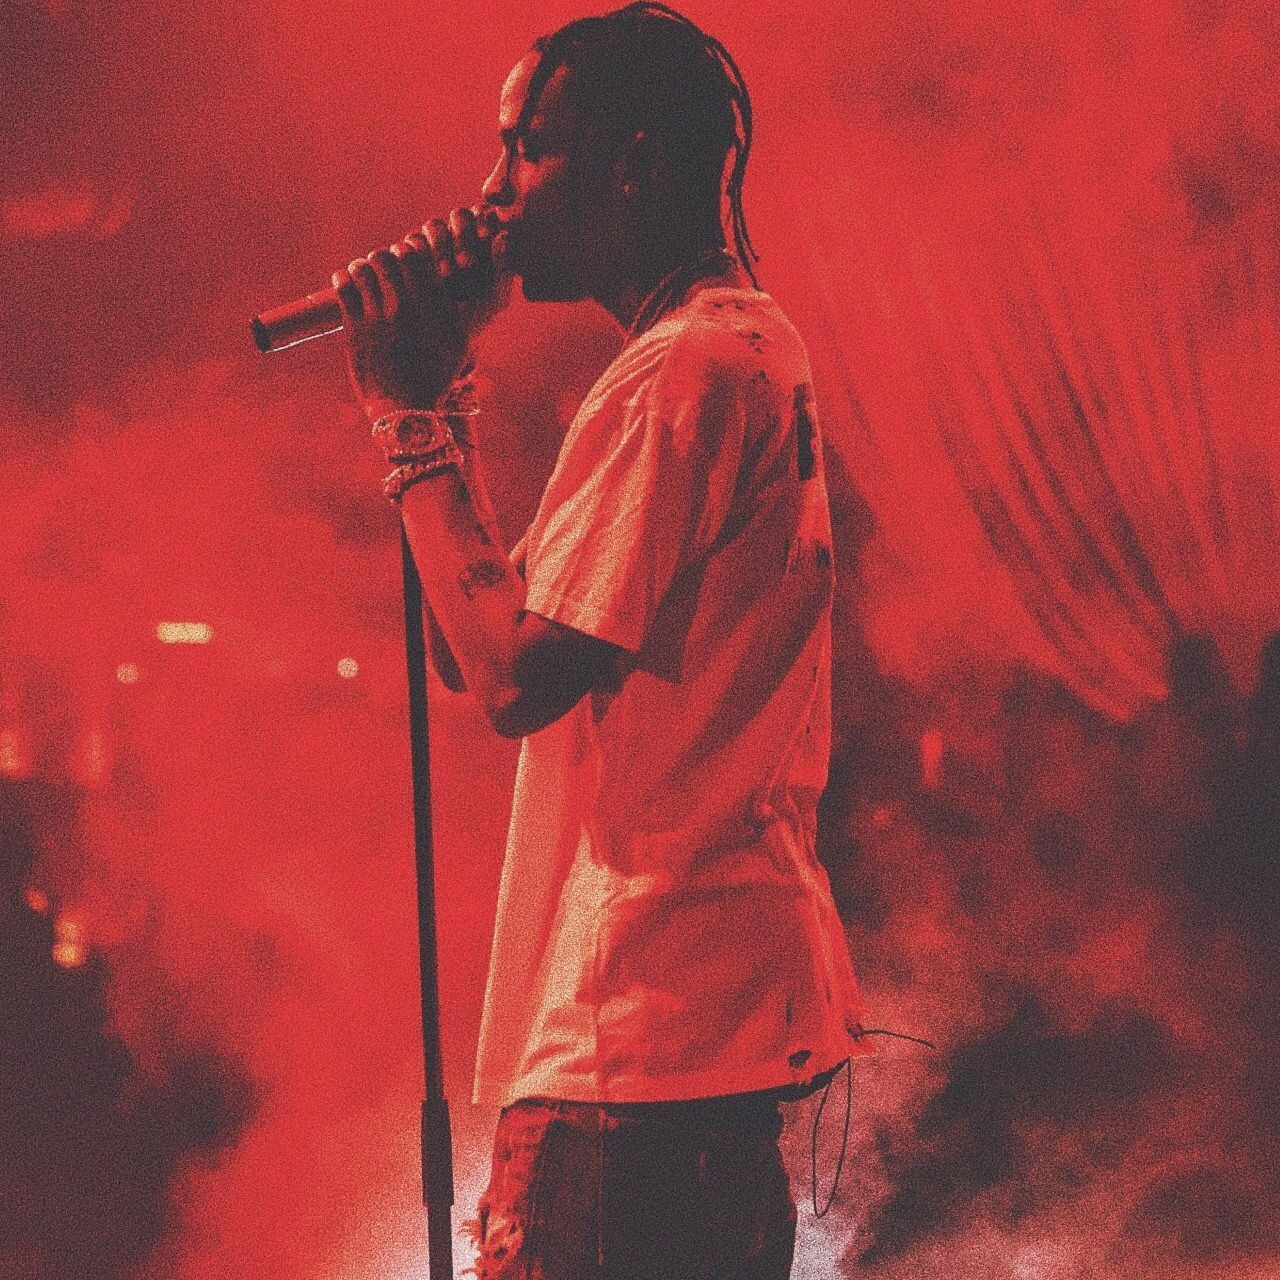 Travis Scott Wallpaper 300x300 Travisscottwallpapers Travis Scott Wallpaper 300x300 In 2020 Travis Scott Wallpapers Travis Scott Hypebeast Wallpaper